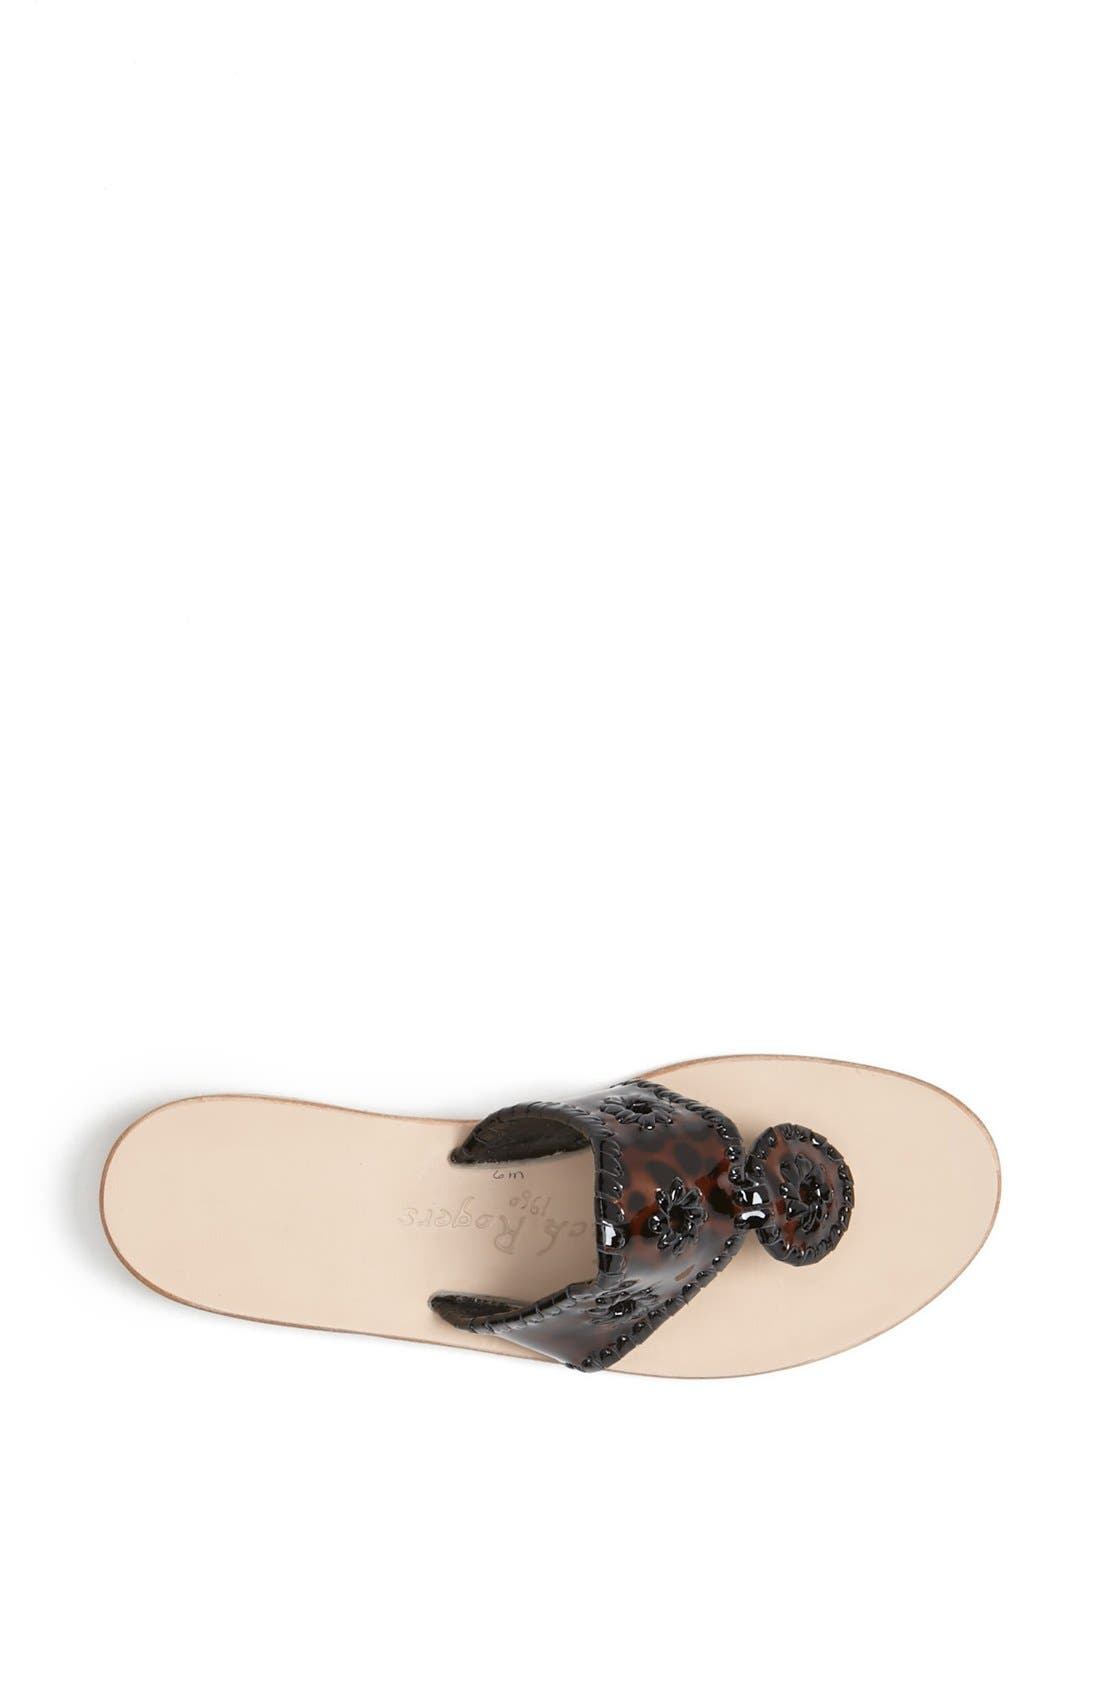 Alternate Image 3  - Jack Rogers Black Label Sandal